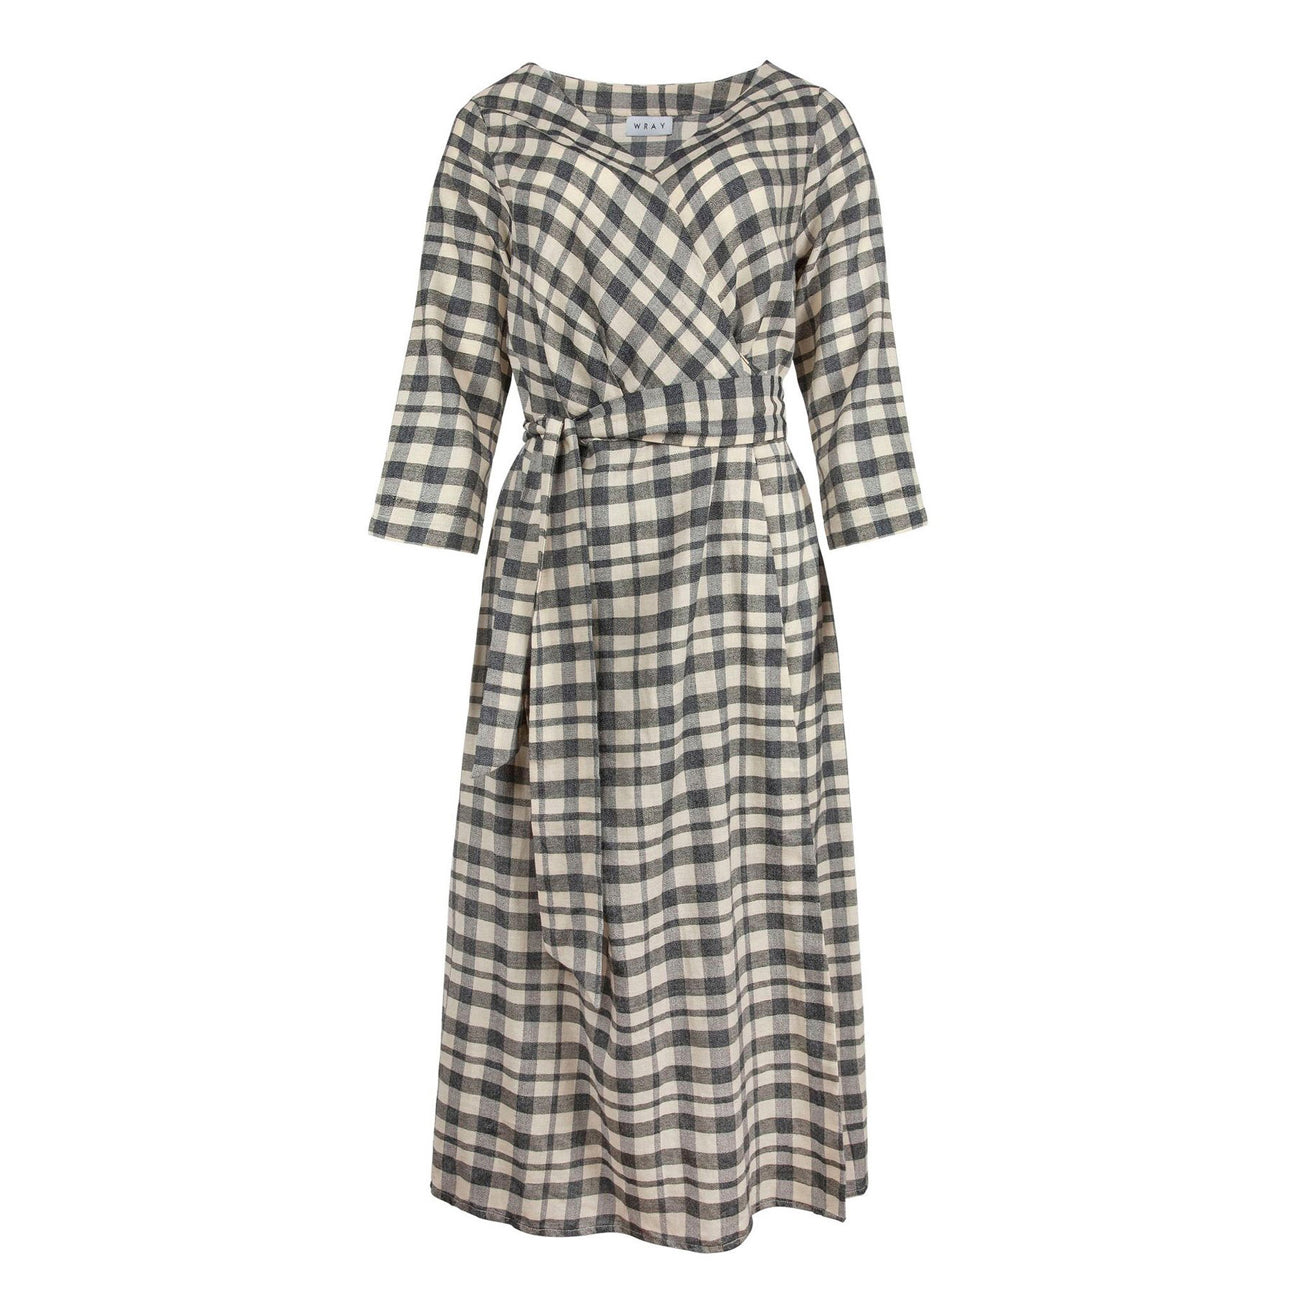 wrap dress in grey check